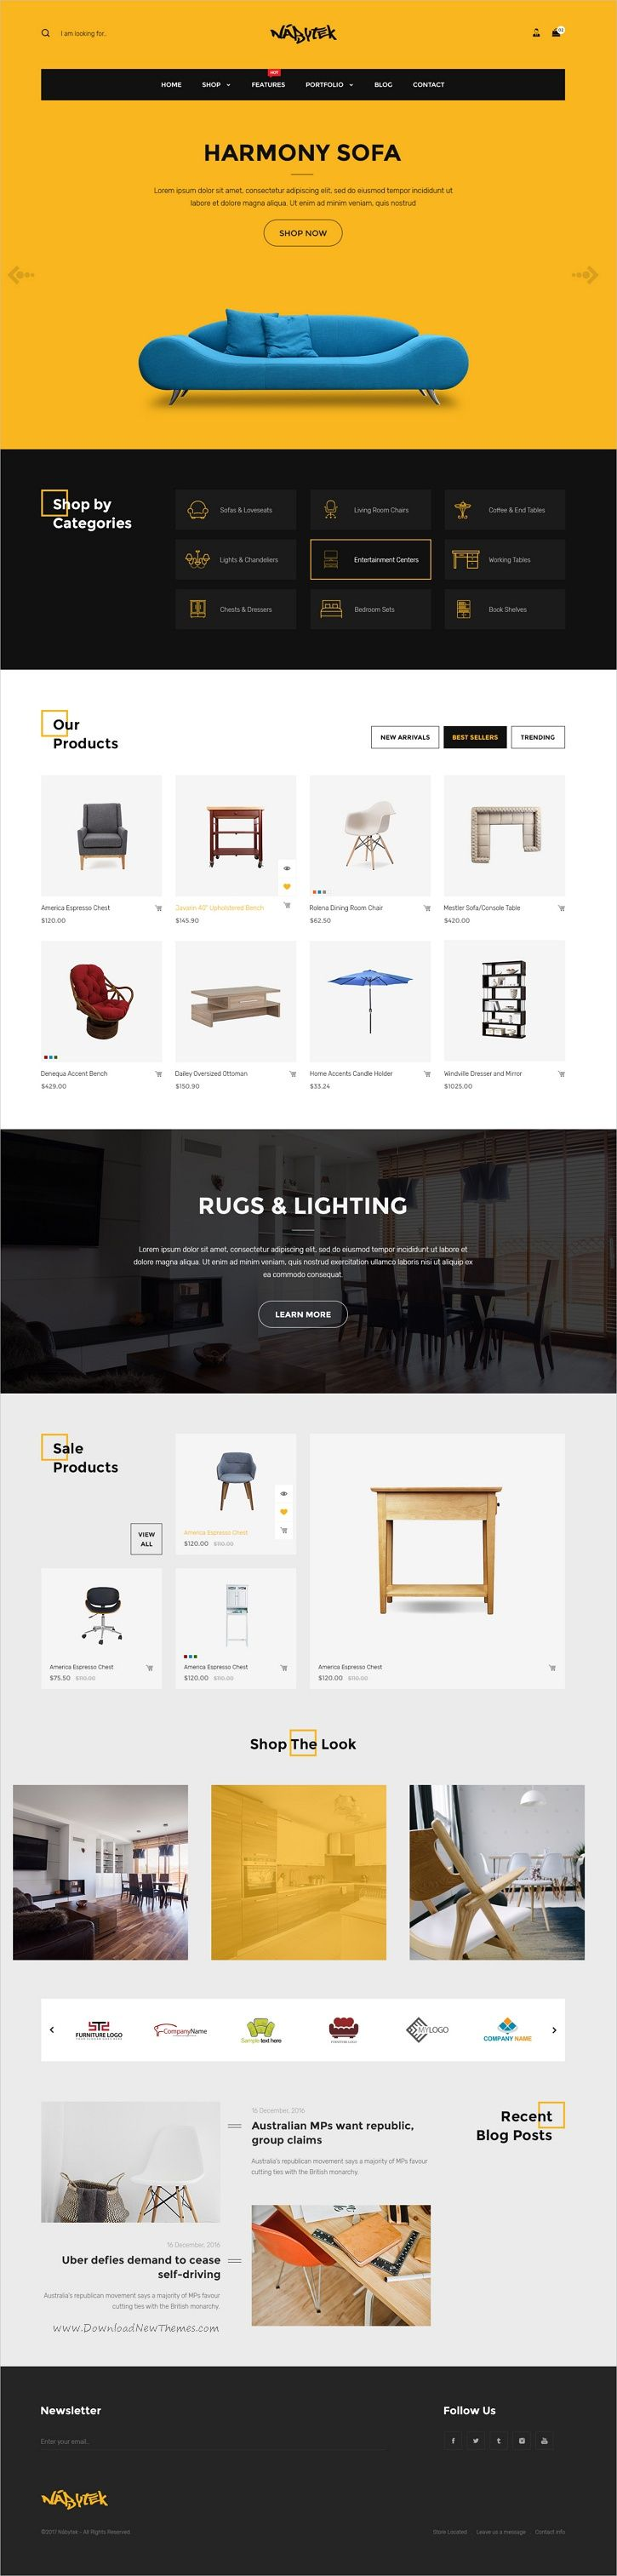 Hitron is a modern and creative PSD template for stunning #furniture #decor #shop eCommerce website with 14 unique homepage layouts and 52 layered PSD files download now➩ https://themeforest.net/item/hitron-multistore-psd-template/19514996?ref=Datasata